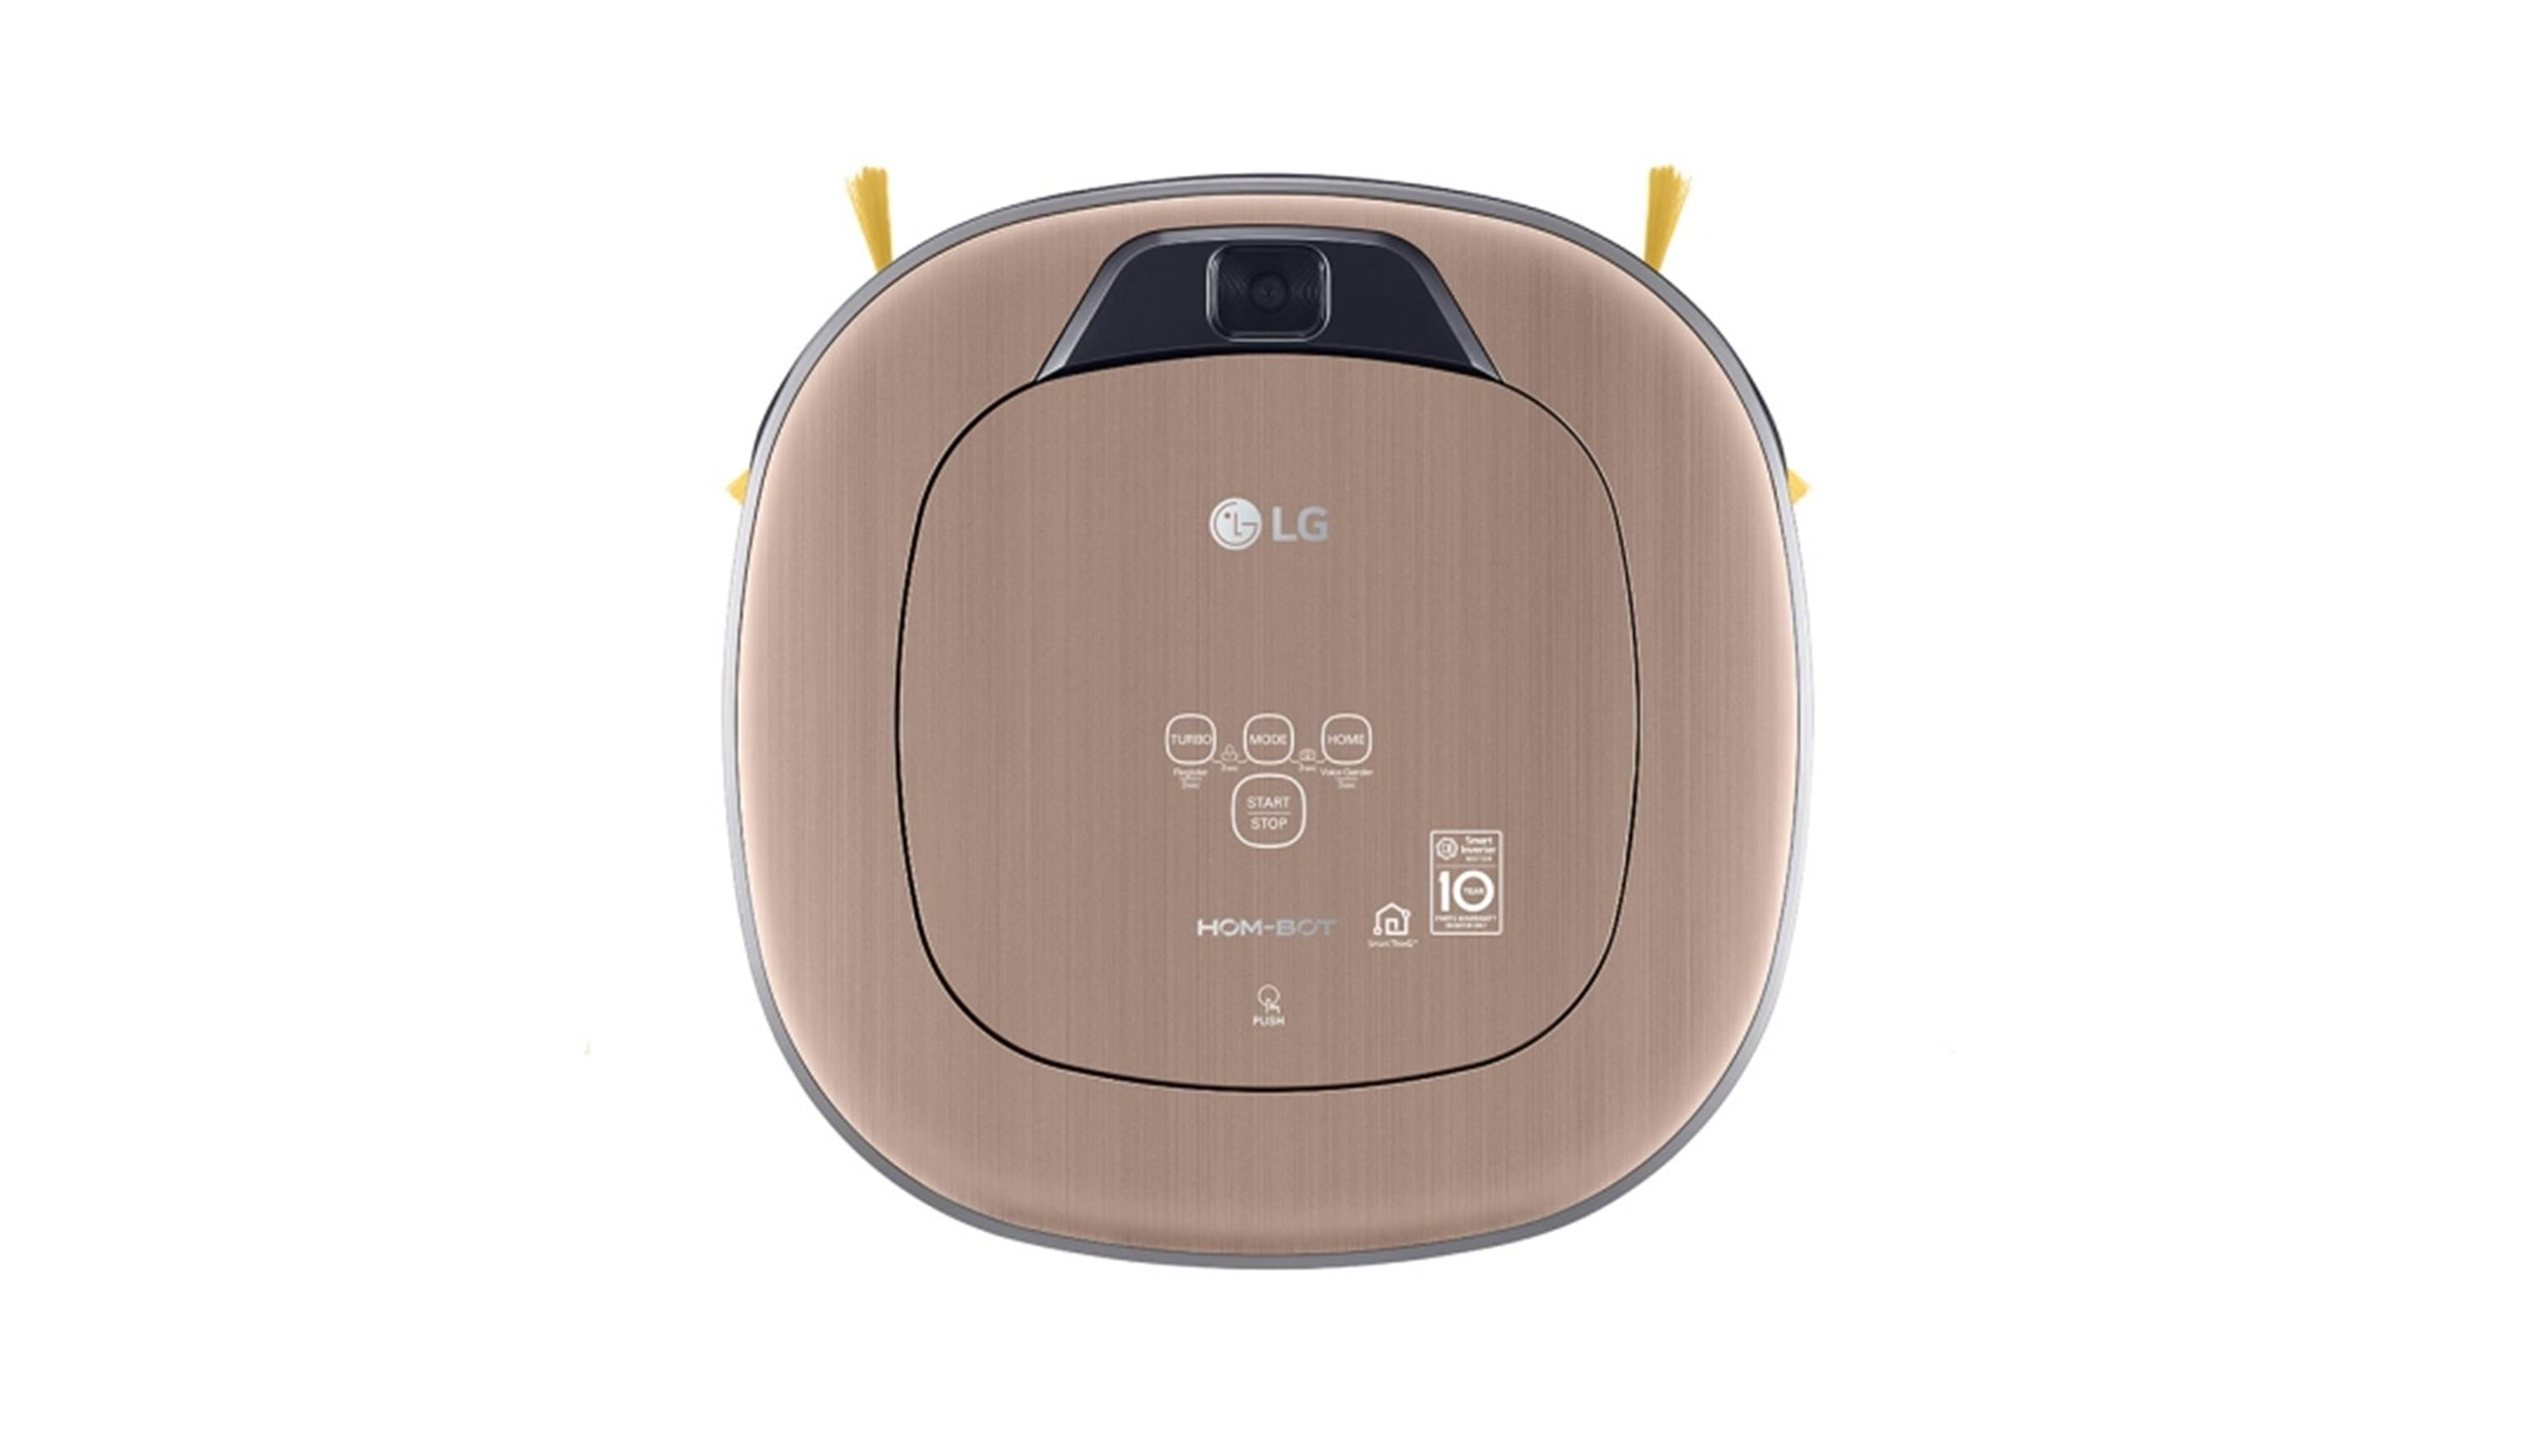 LG VR66820VMNC Network Robotic Vacuum Cleaner- Top View